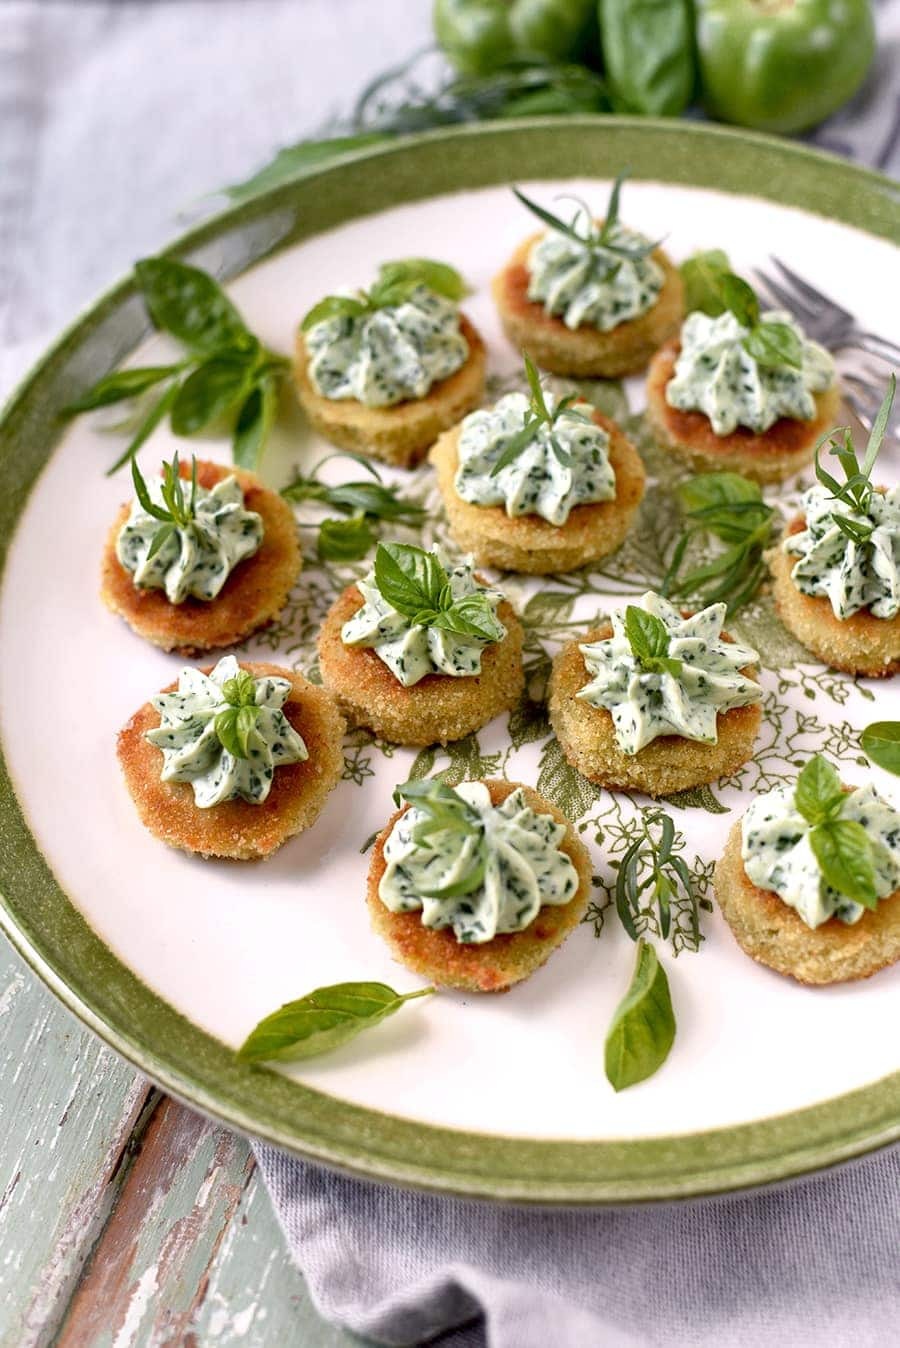 Fried Green Tomatoes 5234 Web - Fried Green Tomatoes </br>with Whipped Herb Chevre